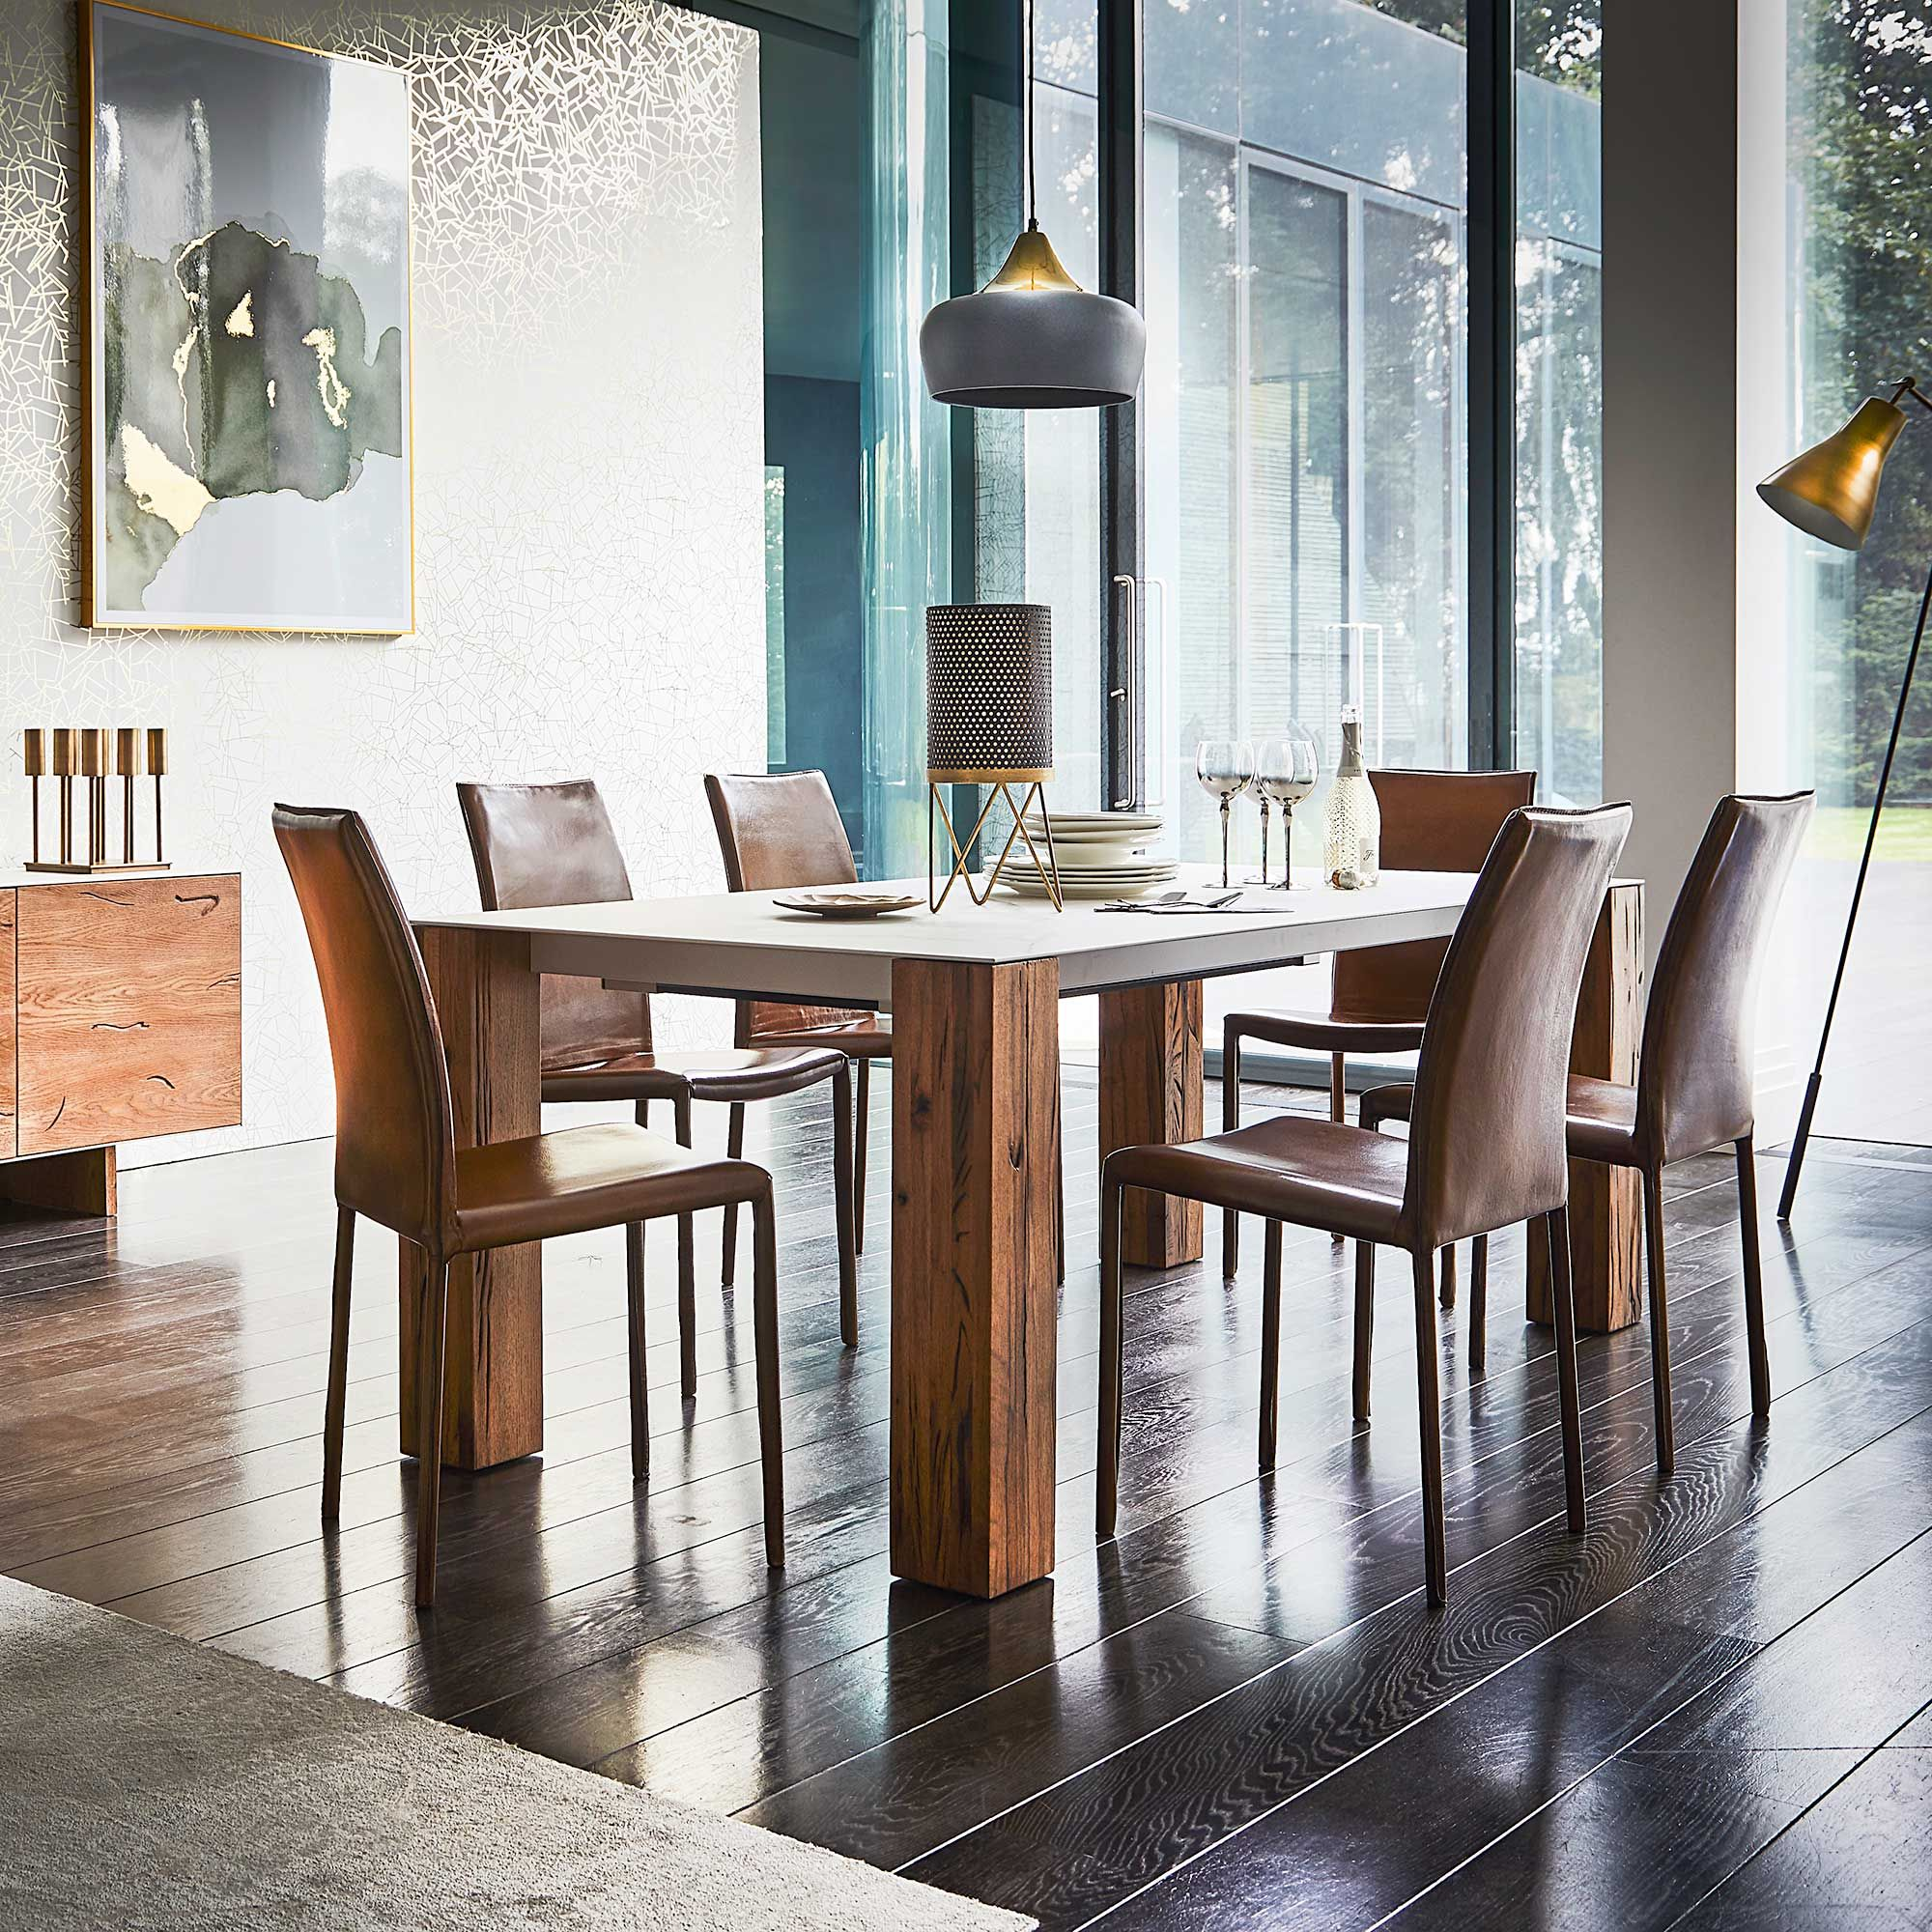 Thin Dining Table Wild Oak And Ceramic  A Sleek Ceramic Table Custom Dining Room Suit Decorating Inspiration